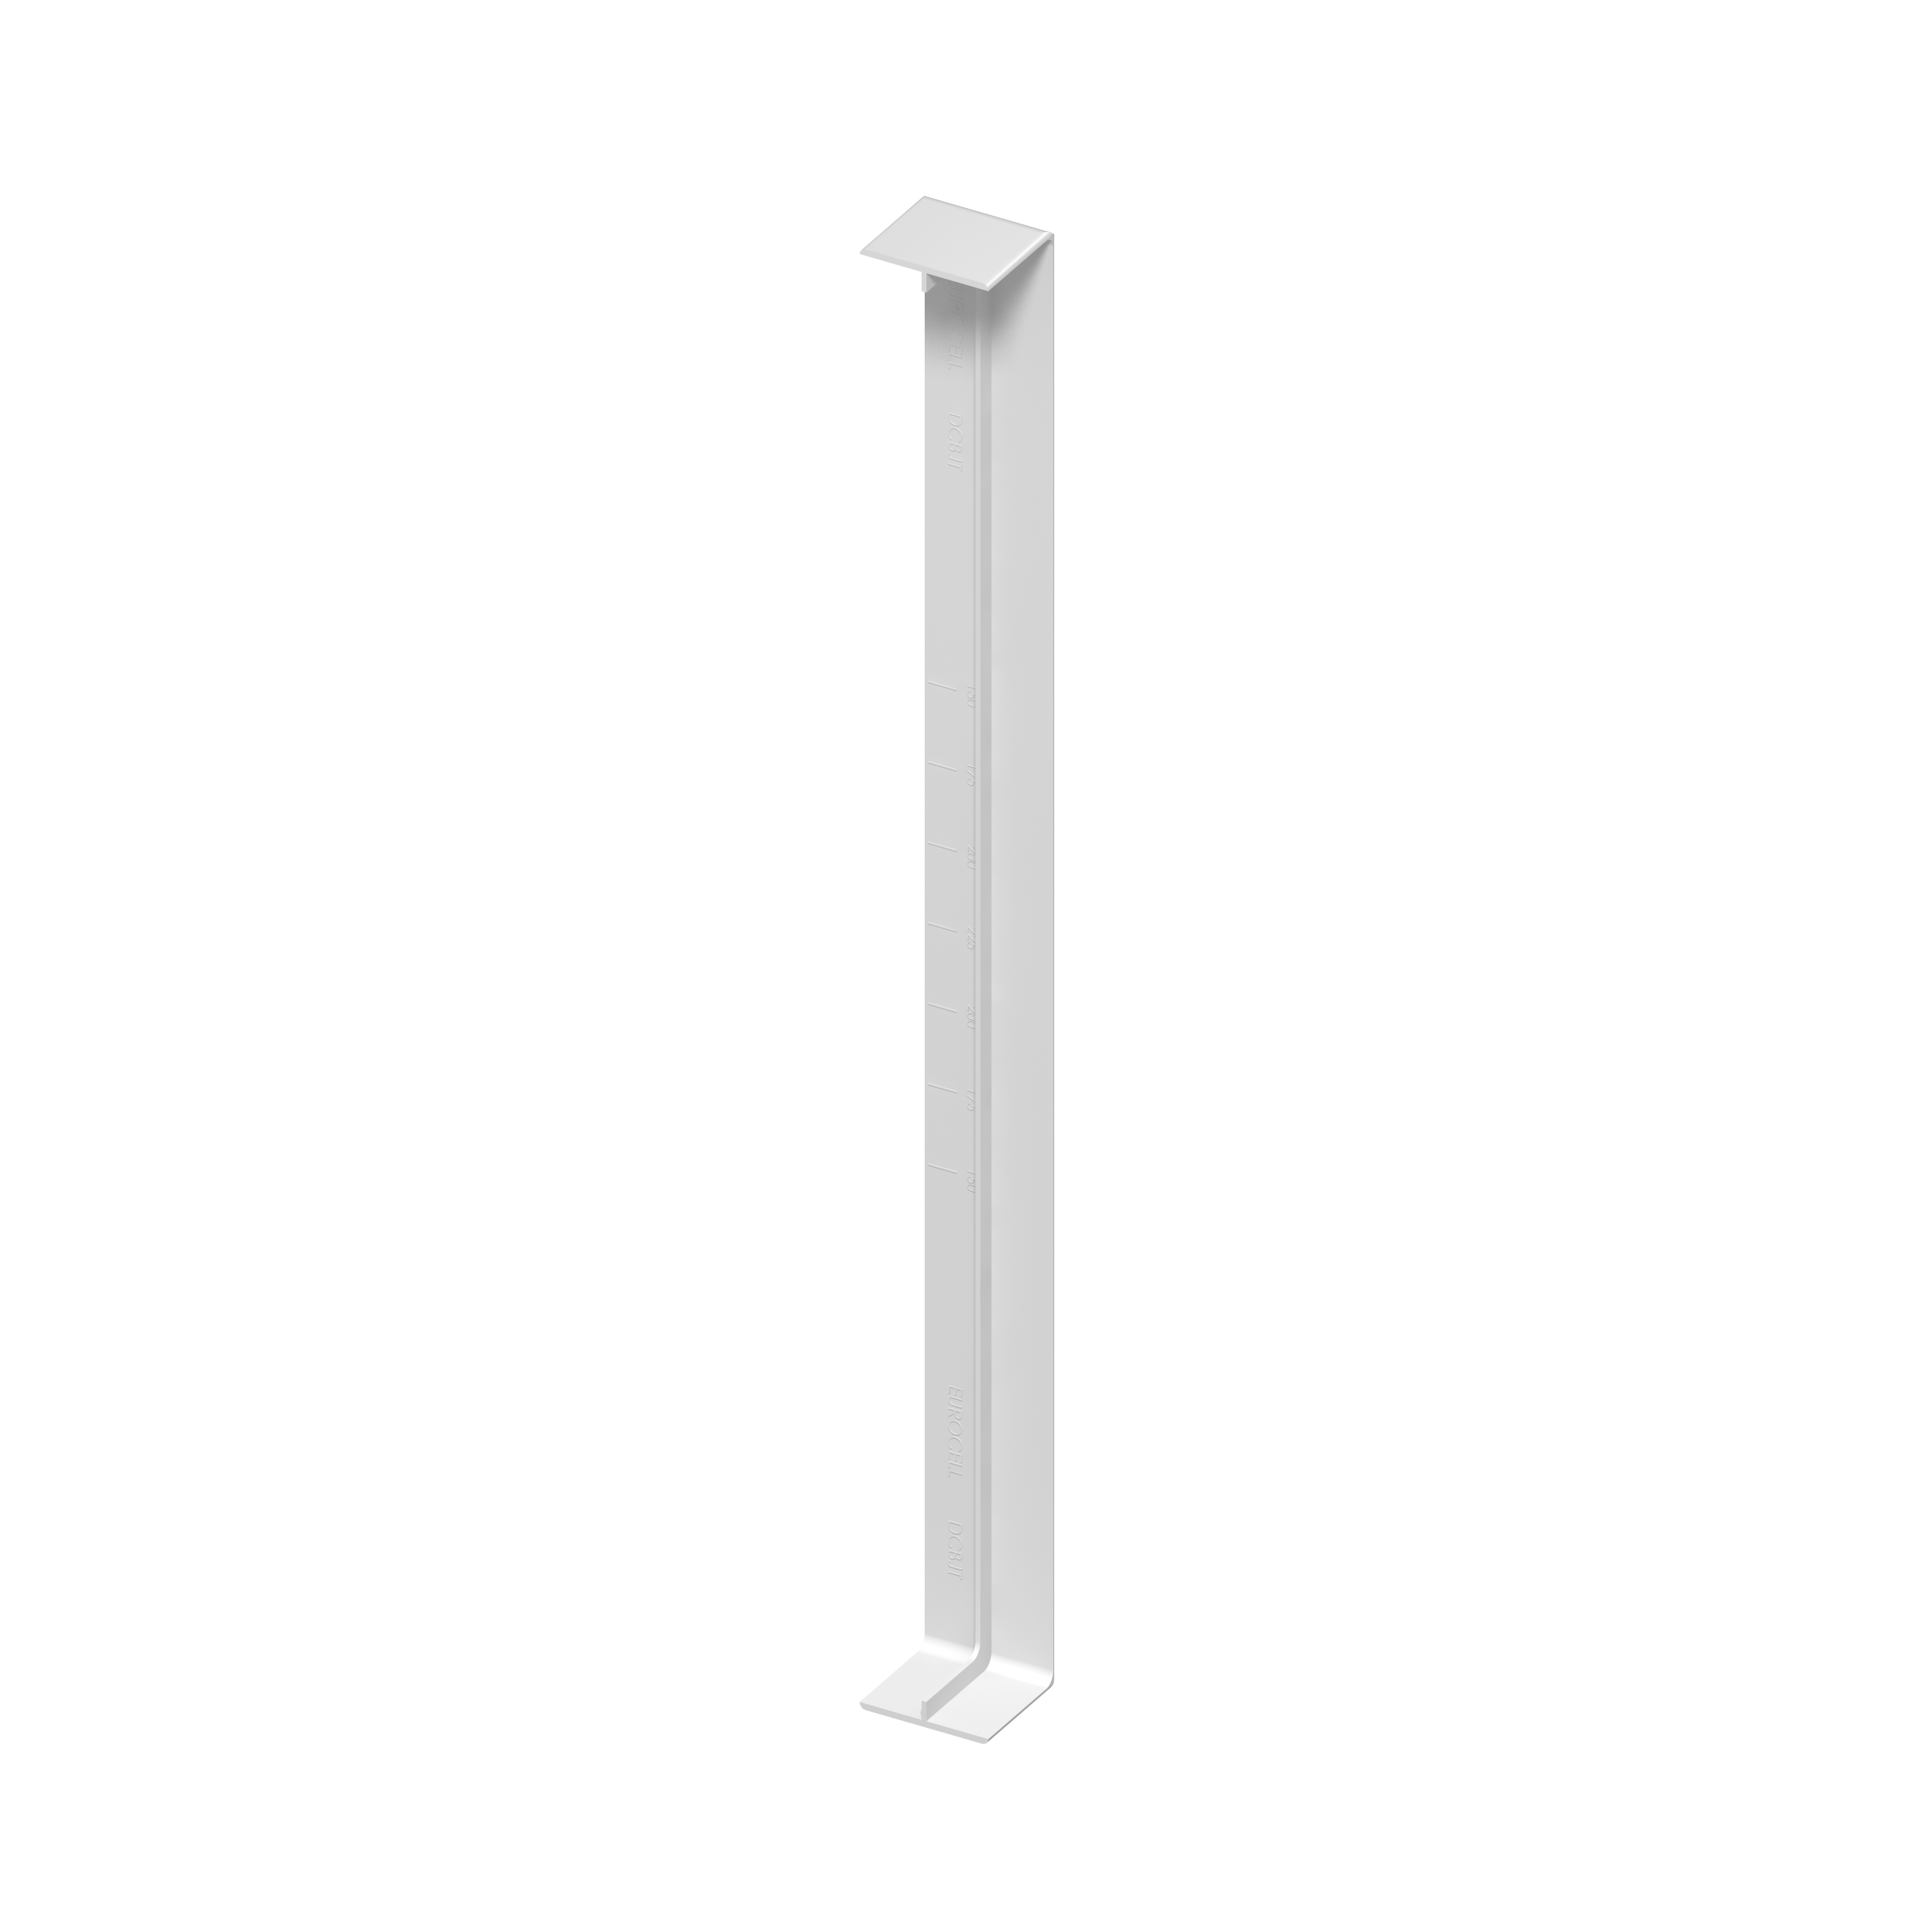 Double Fascia Joint 450mm